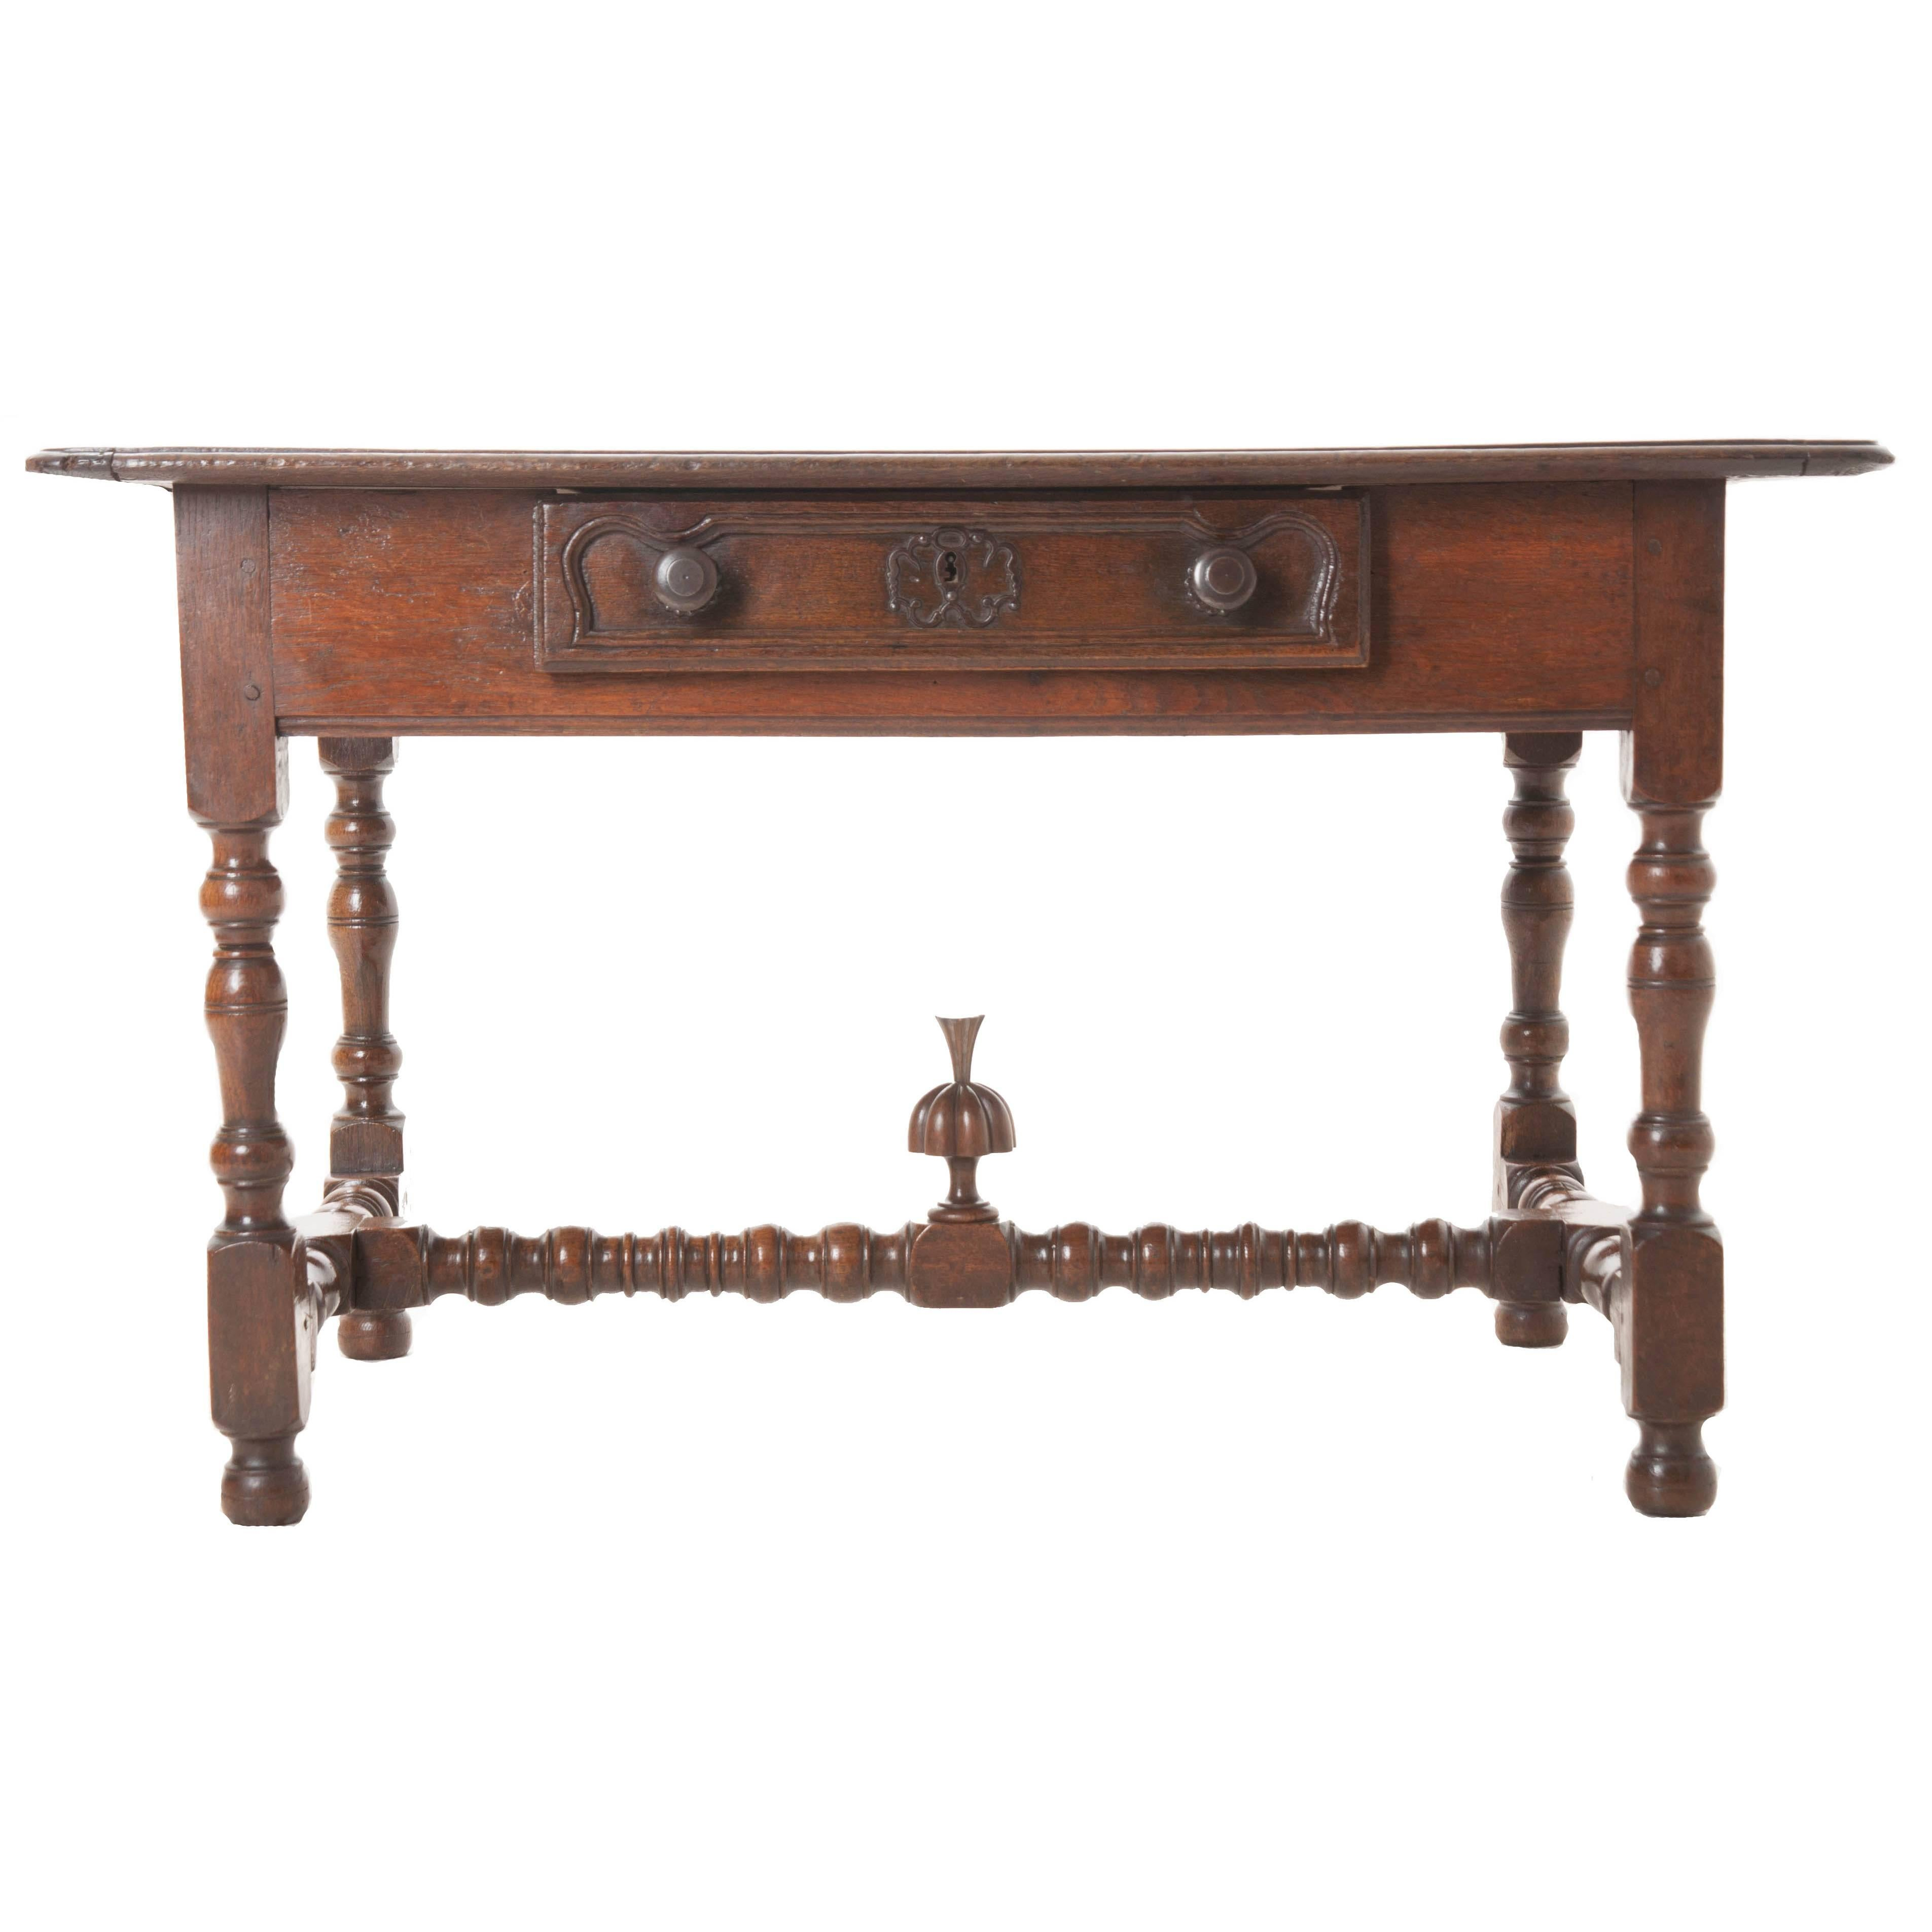 French 18th Century Oak Table with Drawer